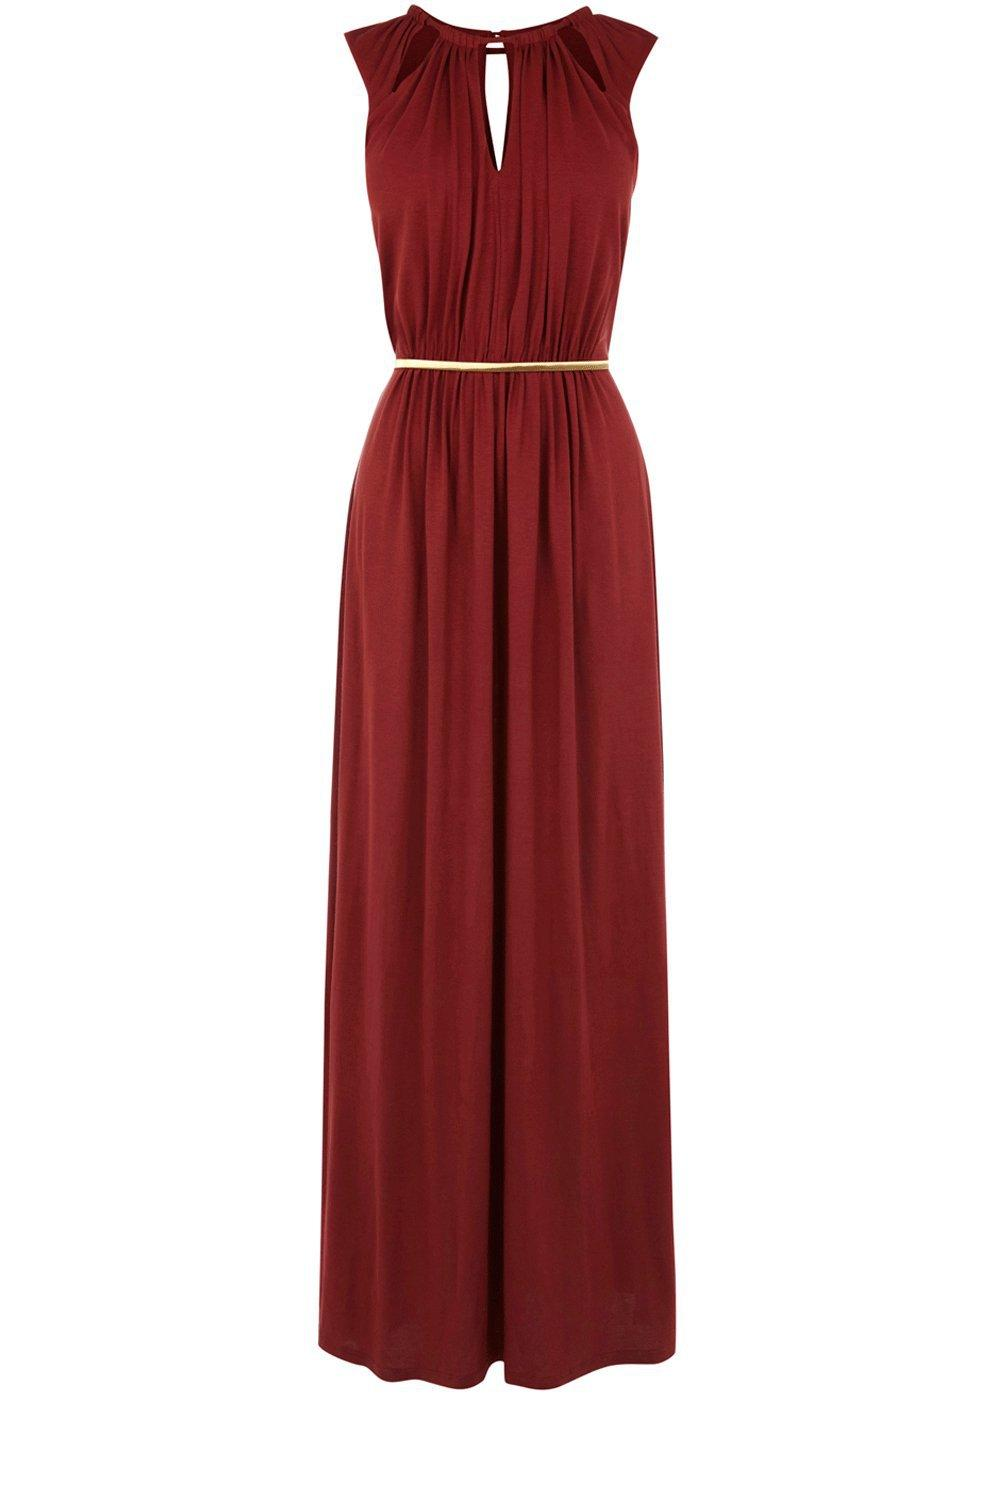 Womens clothes stores uk